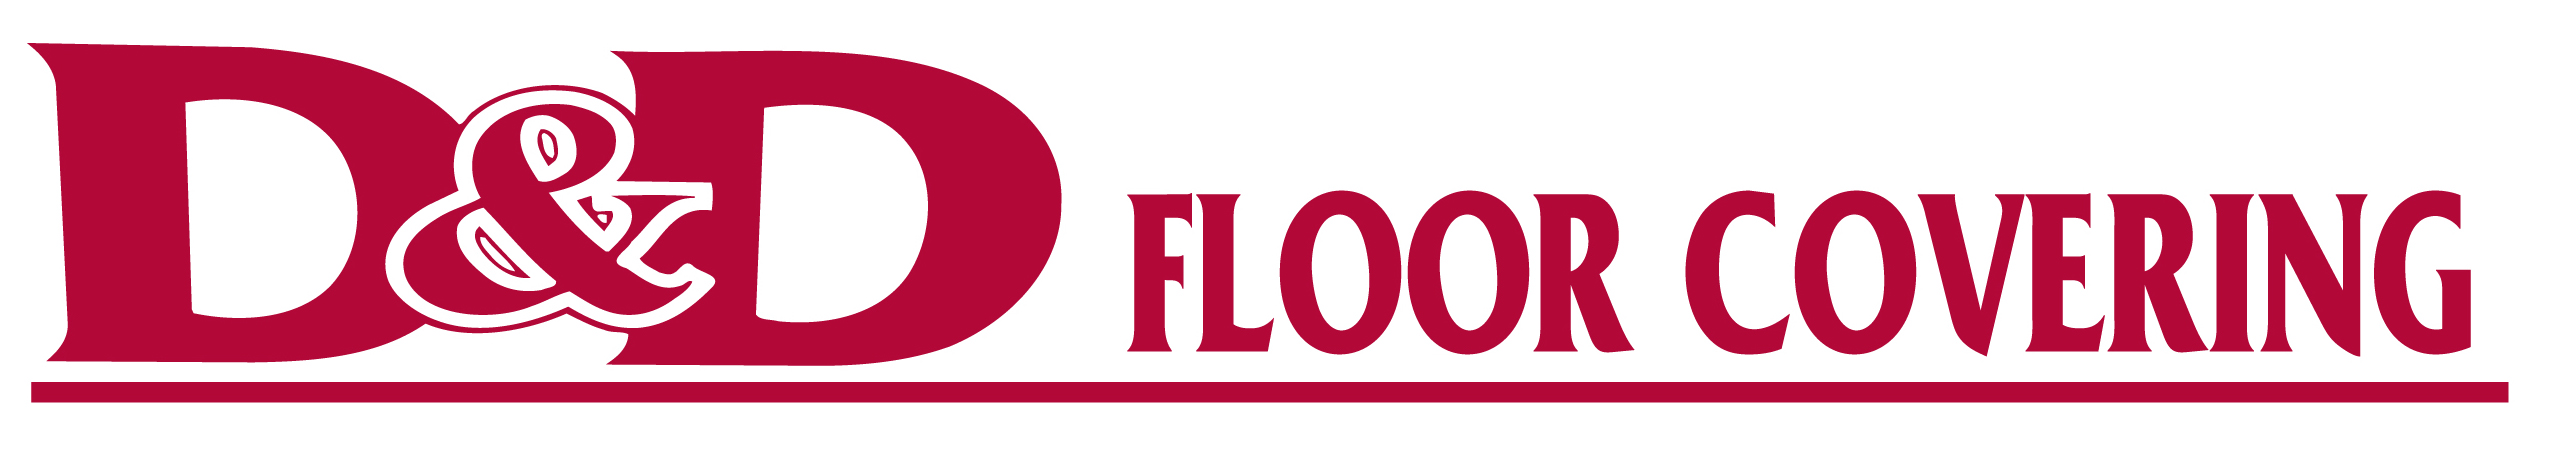 D & D Floor Covering